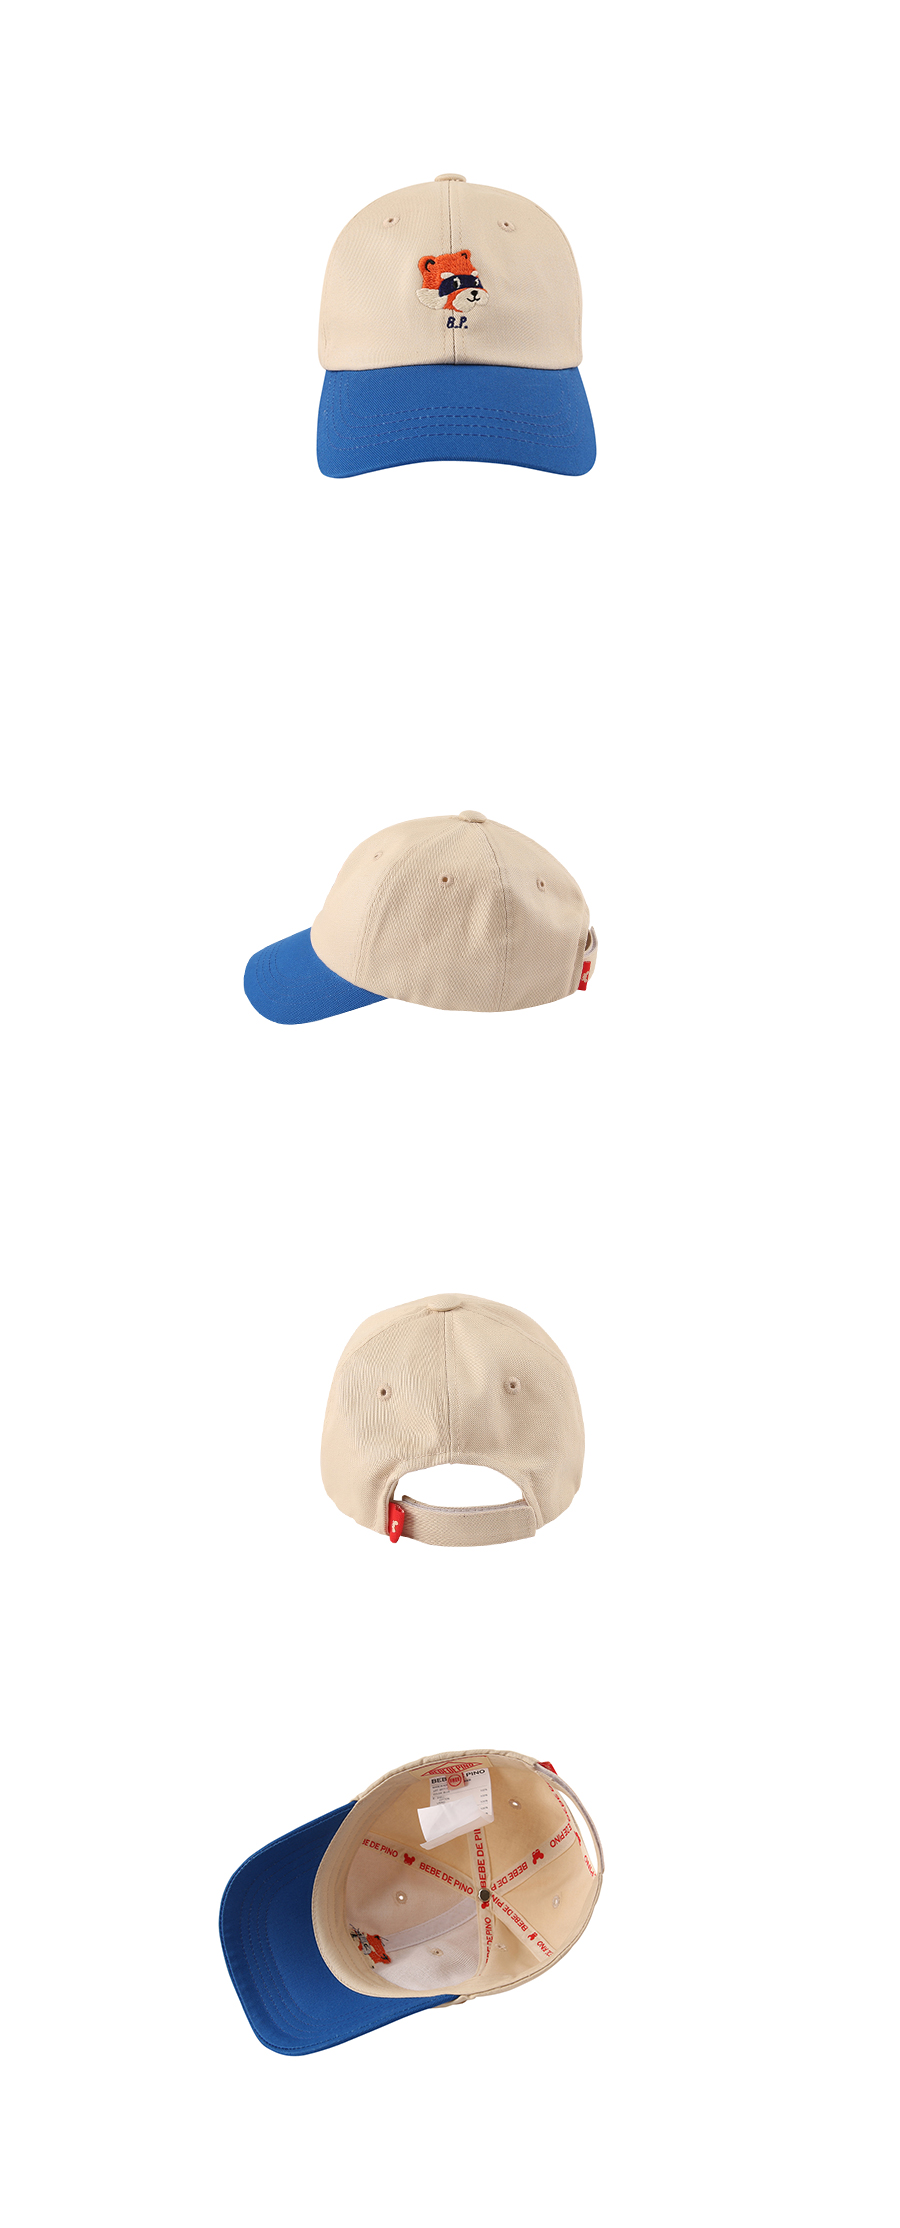 Lesser panda color block baseball cap 상세 이미지